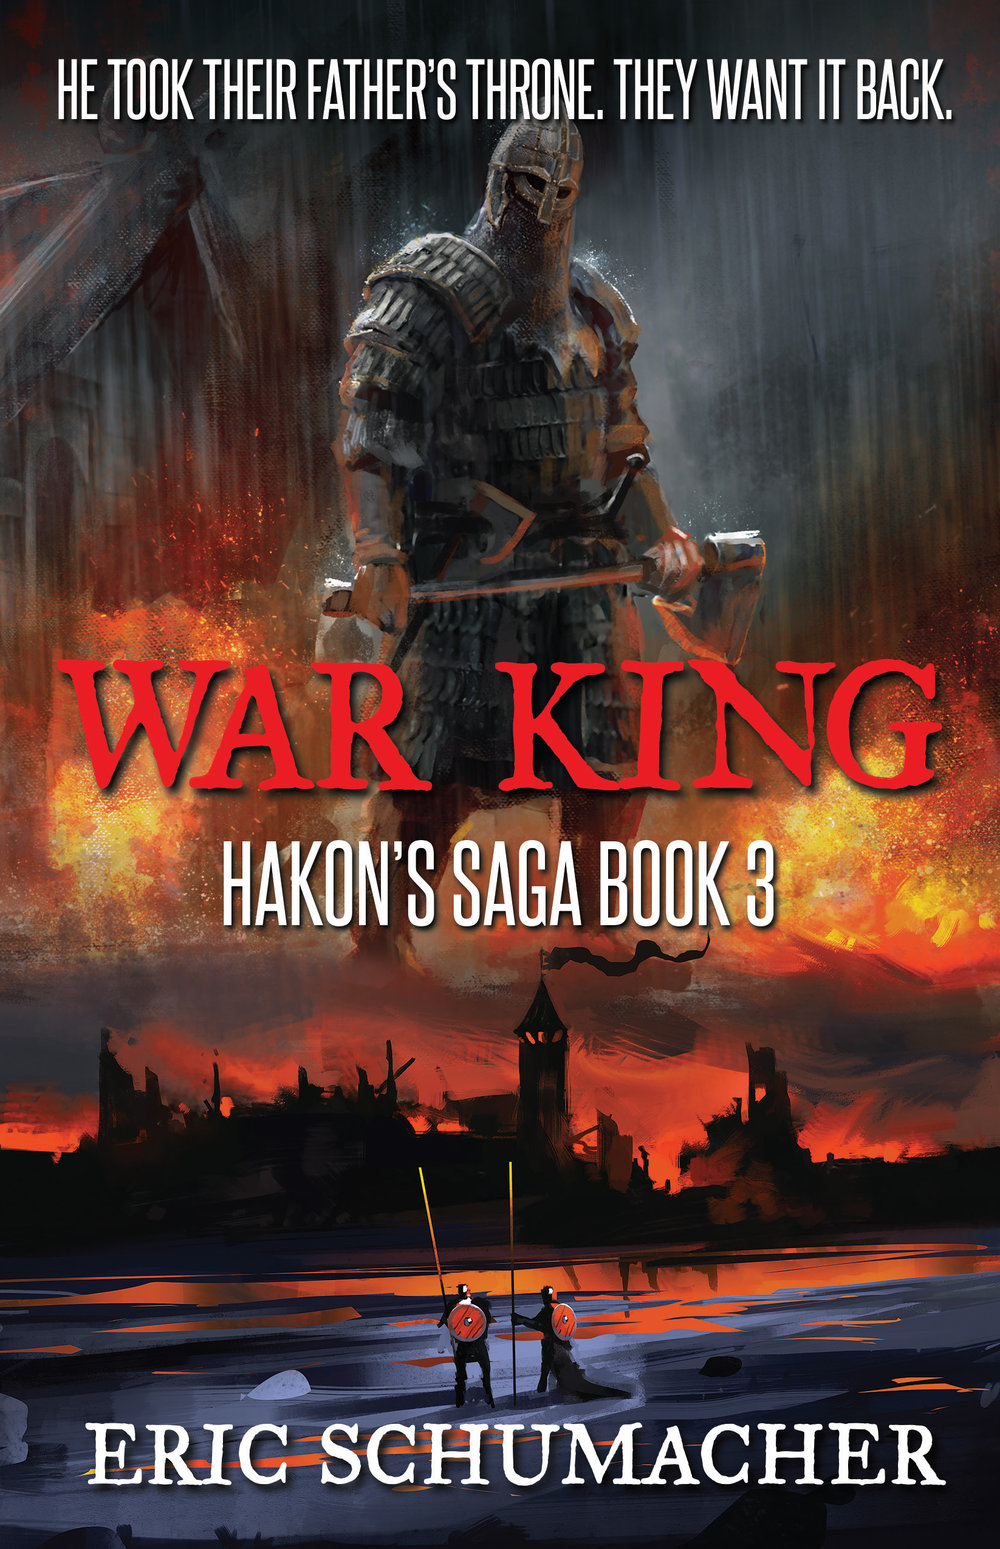 Cover of War King. Release date: Oct 15, 2018.